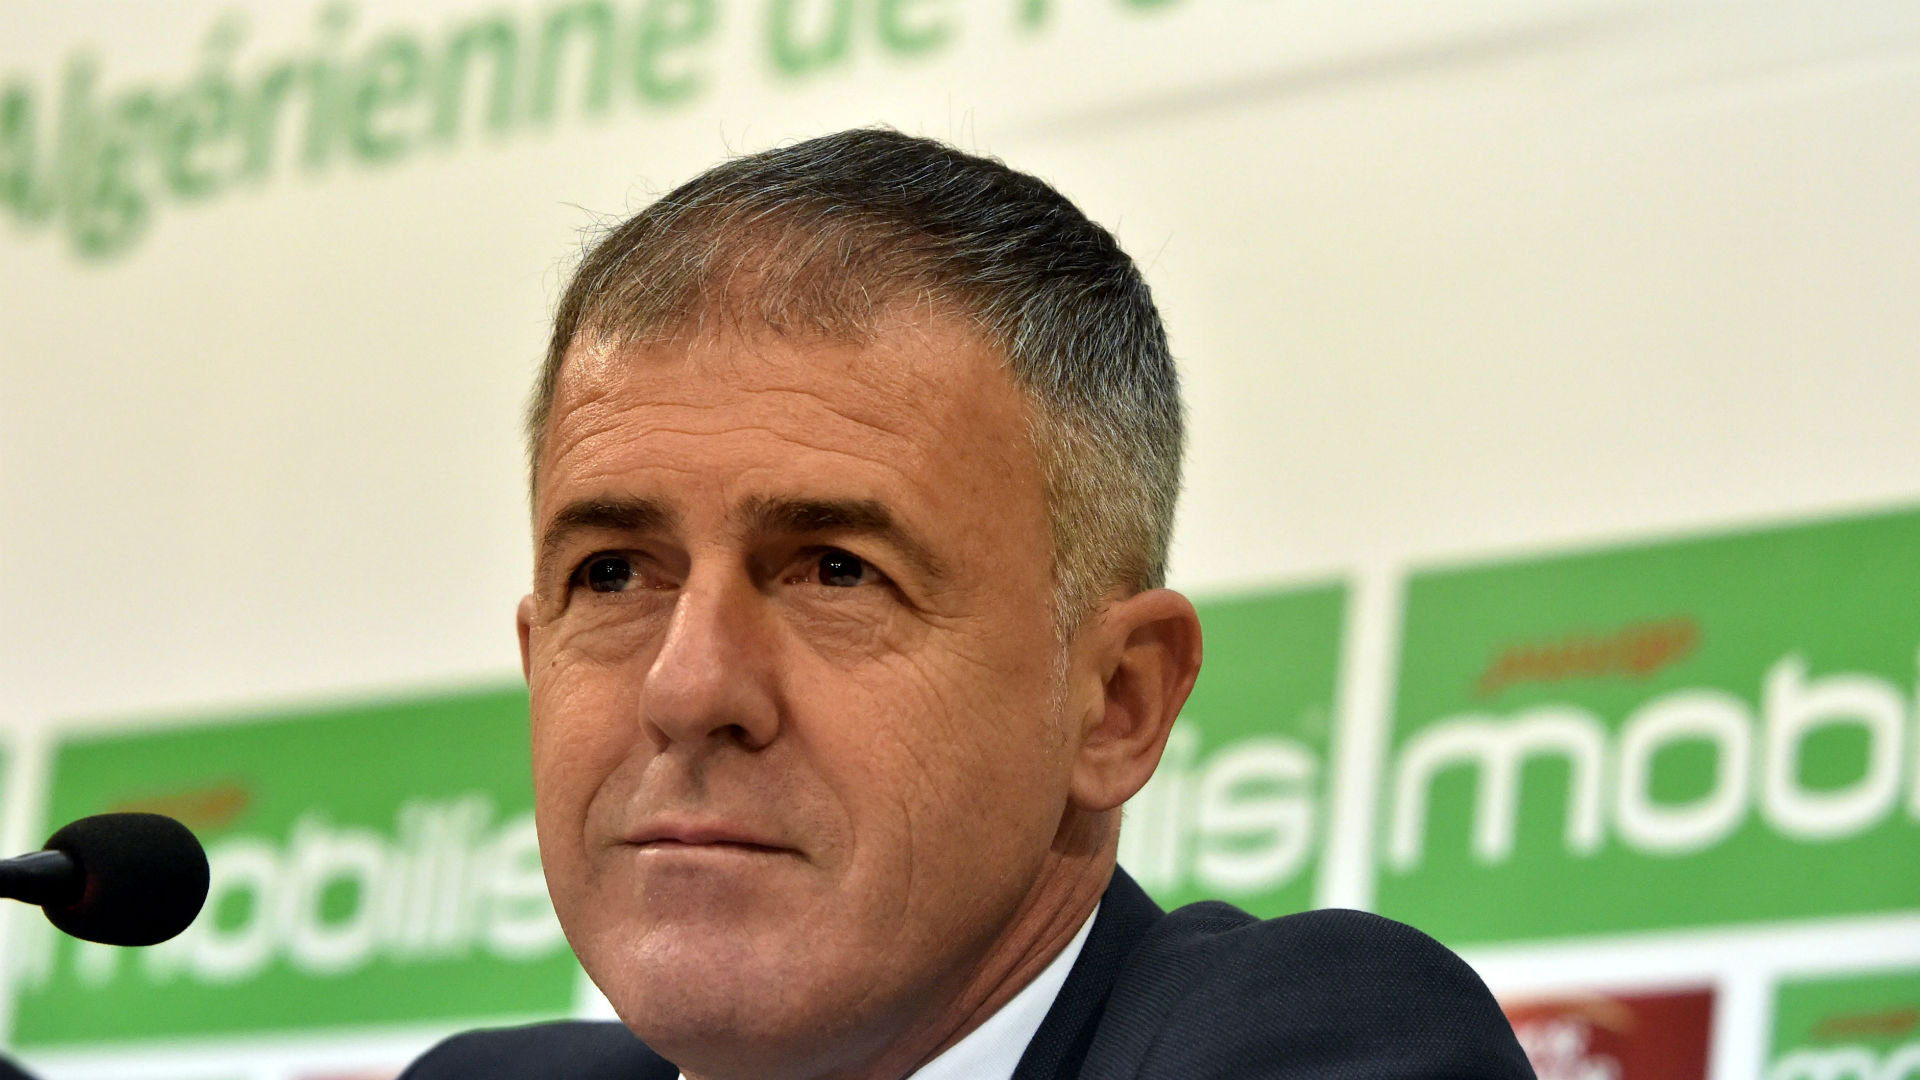 Algeria Football Federation to pay Alcaraz €1.5m compensation